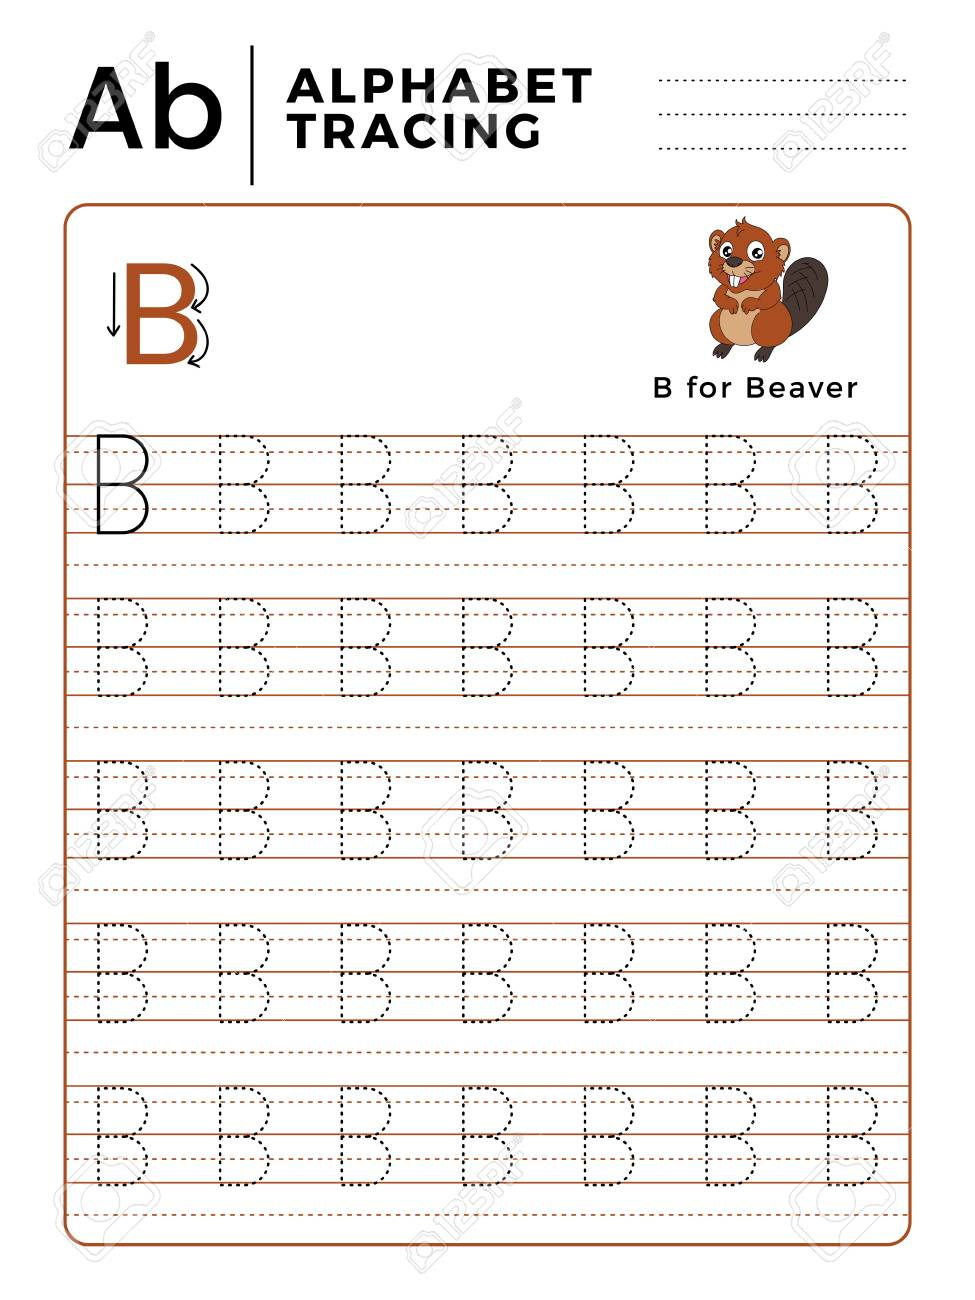 Letter B Alphabet Tracing Book With Example And Funny Beaver..